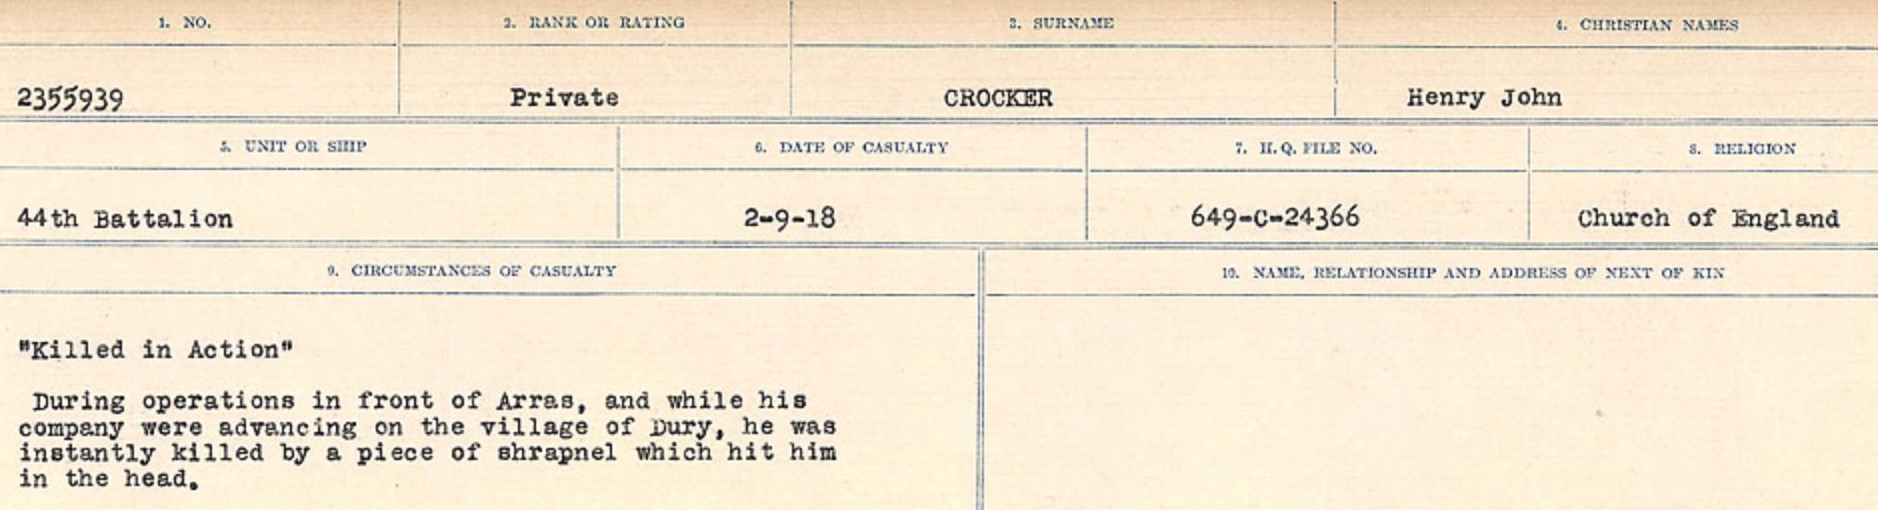 Circumstances of death registers– Source: Library and Archives Canada. CIRCUMSTANCES OF DEATH REGISTERS, FIRST WORLD WAR Surnames: CRABB TO CROSSLAND Microform Sequence 24; Volume Number 31829_B016733. Reference RG150, 1992-93/314, 168. Page 583 of 788